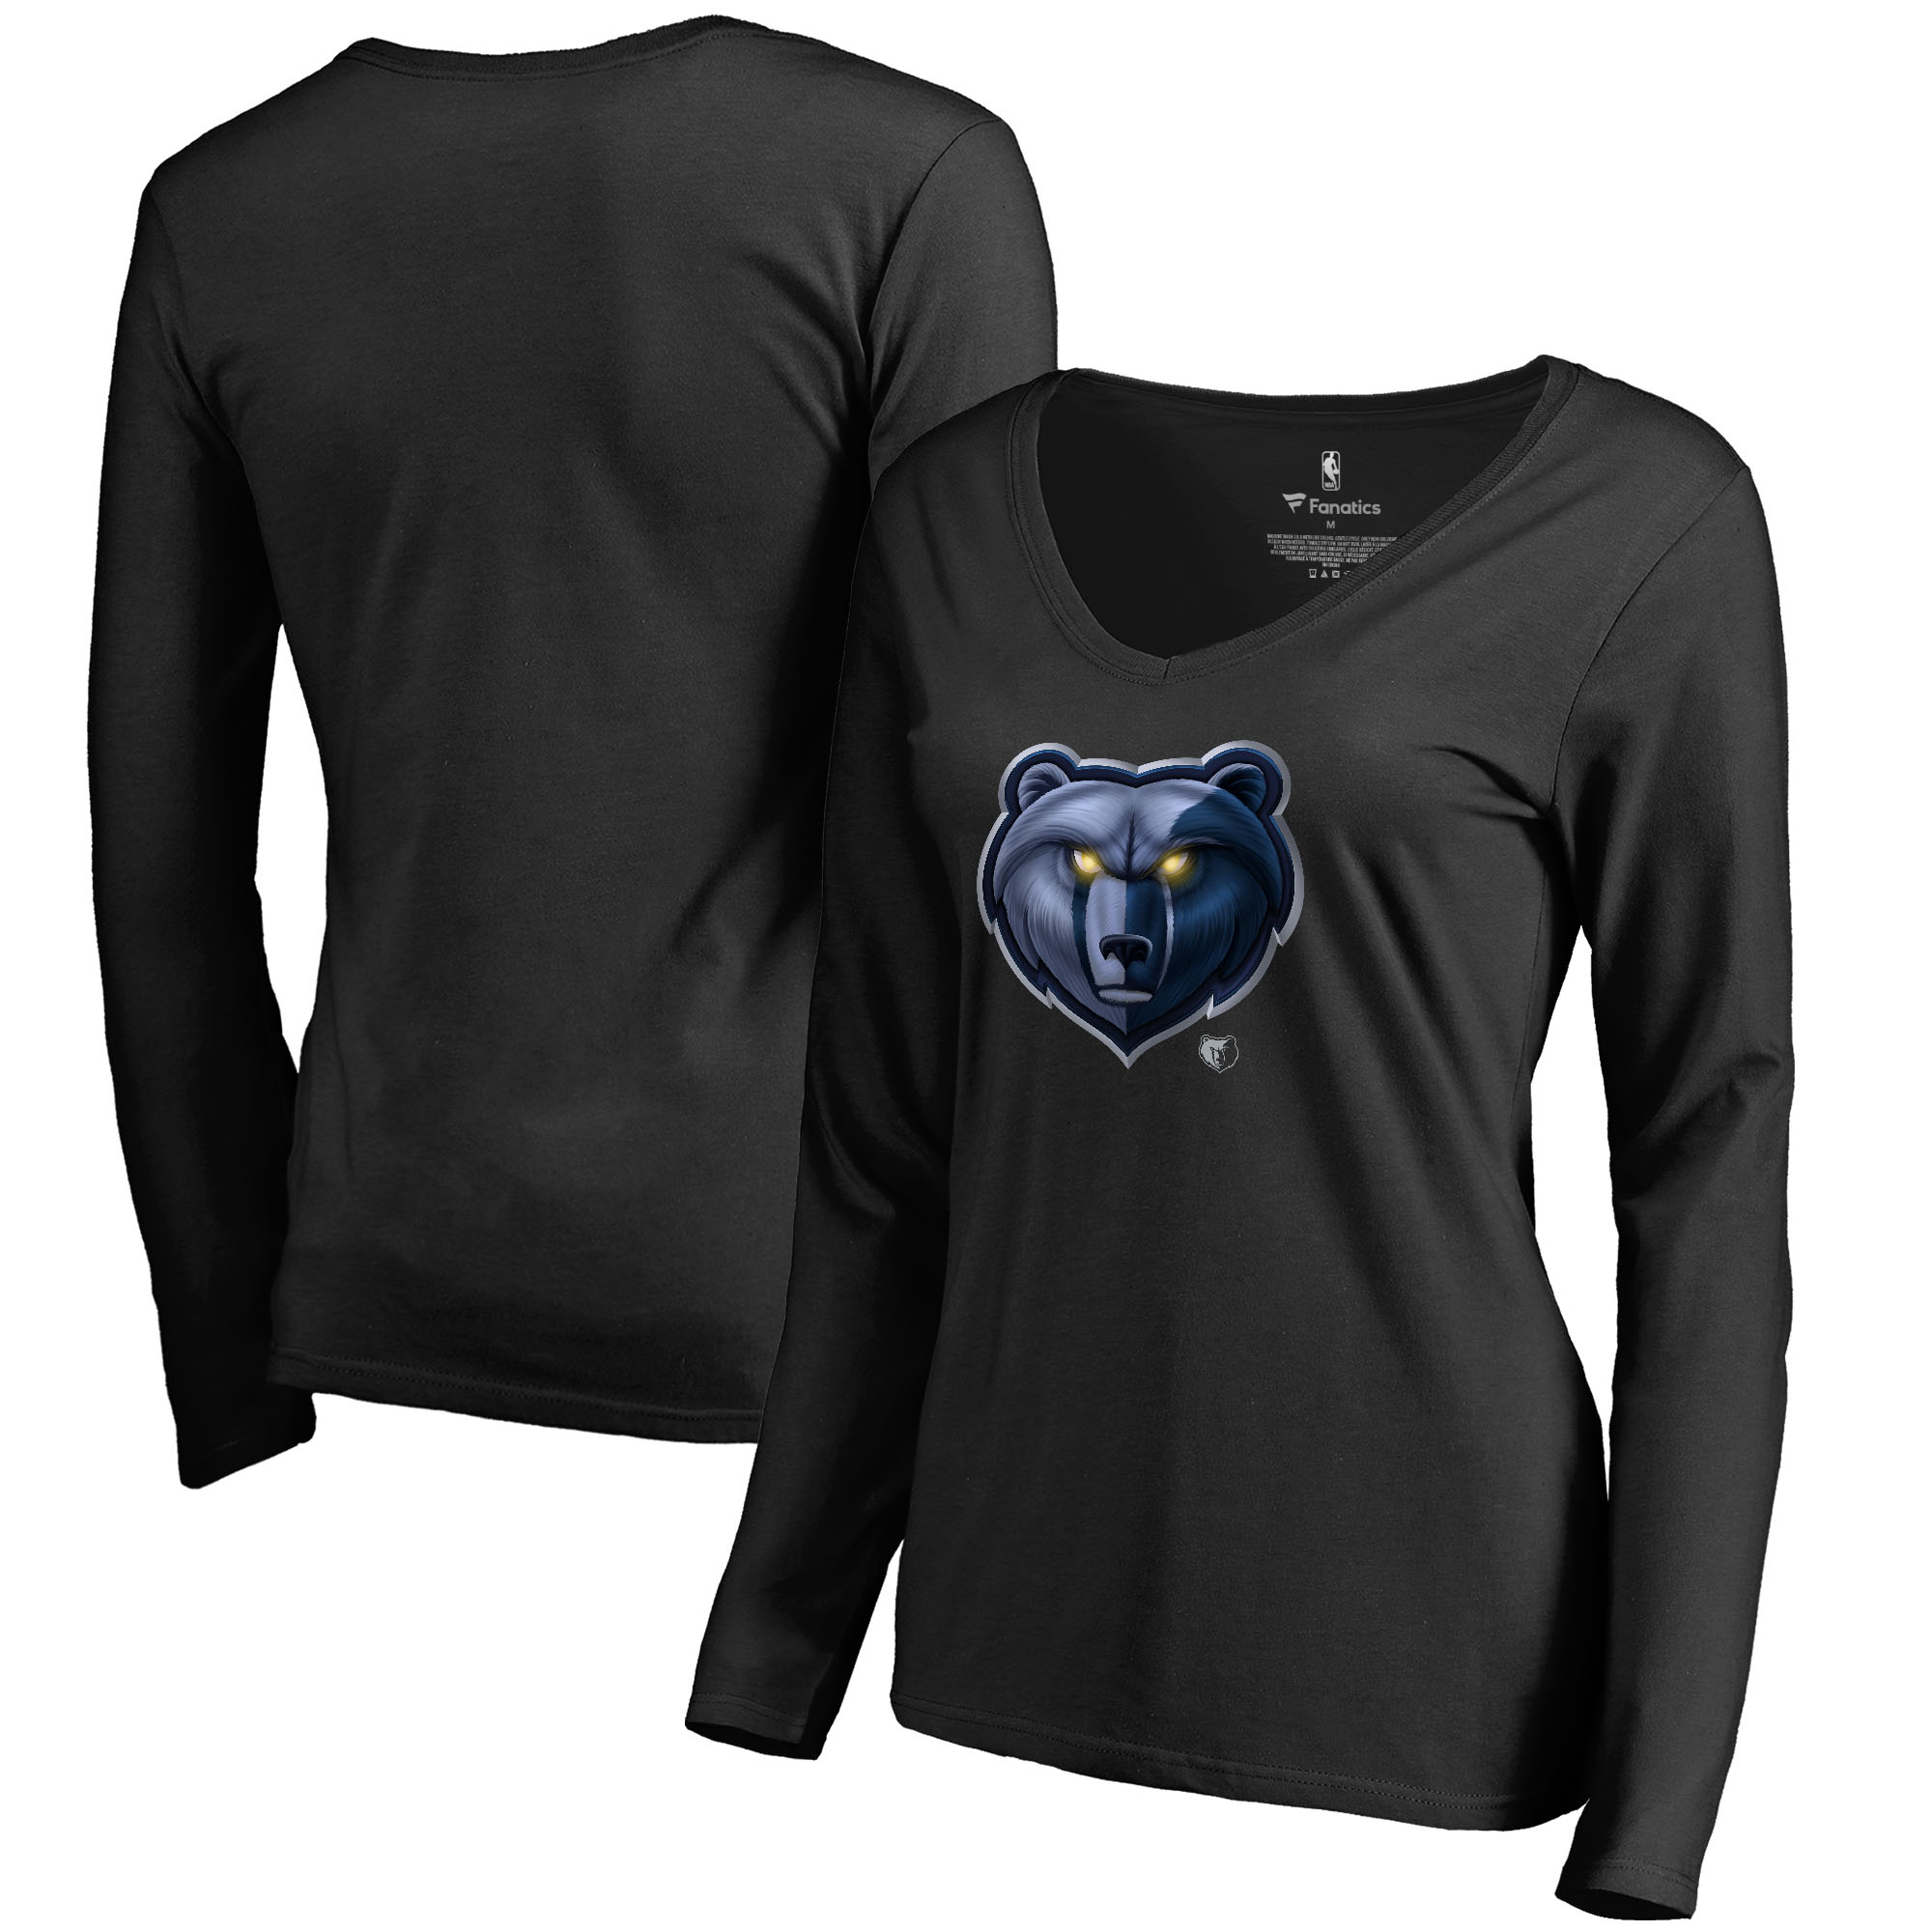 Memphis Grizzlies Fanatics Branded Women's Midnight Mascot Long Sleeve V-Neck T-Shirt - Black